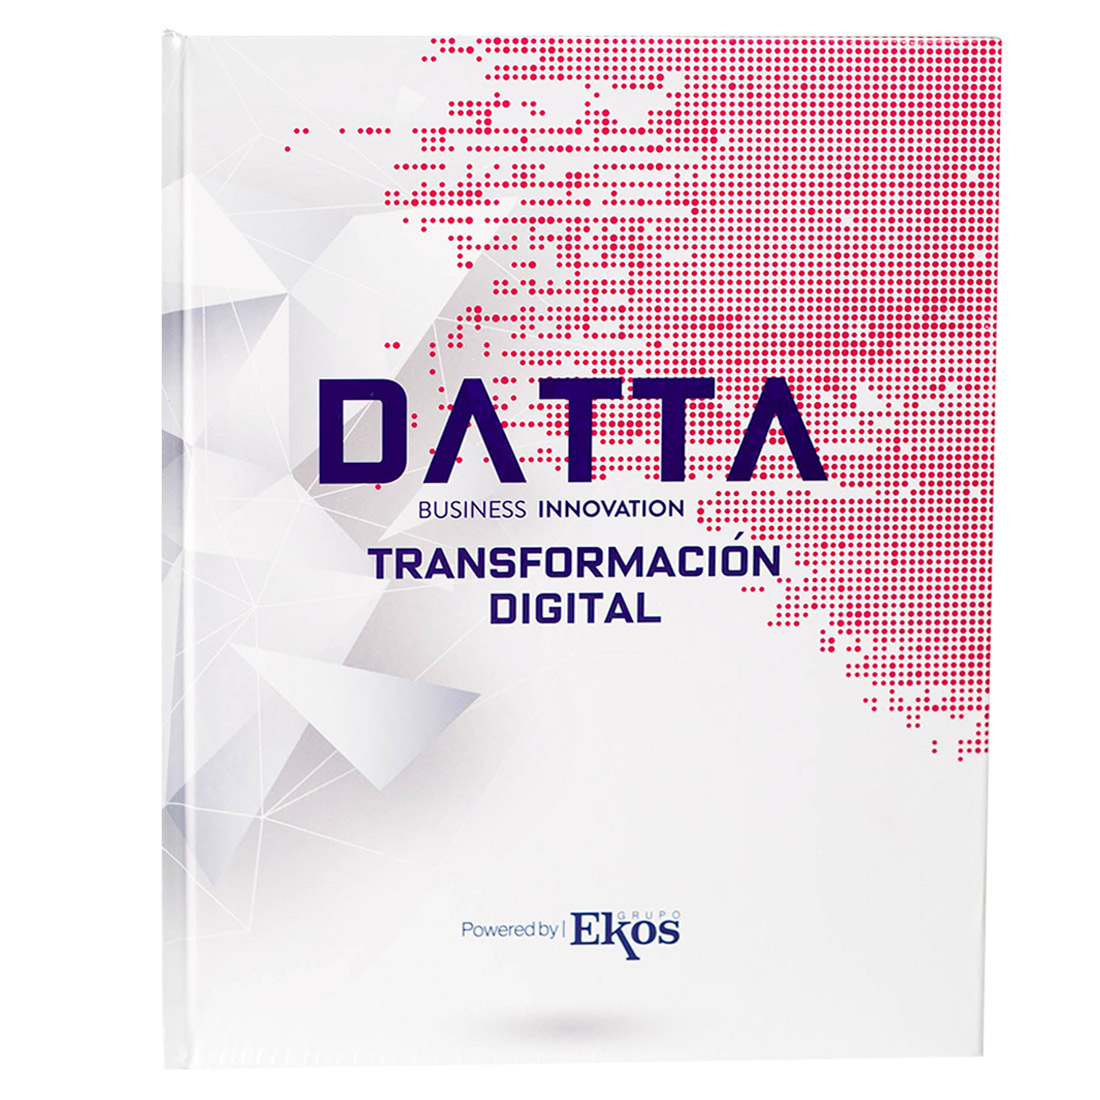 Transformación Digital EKOS